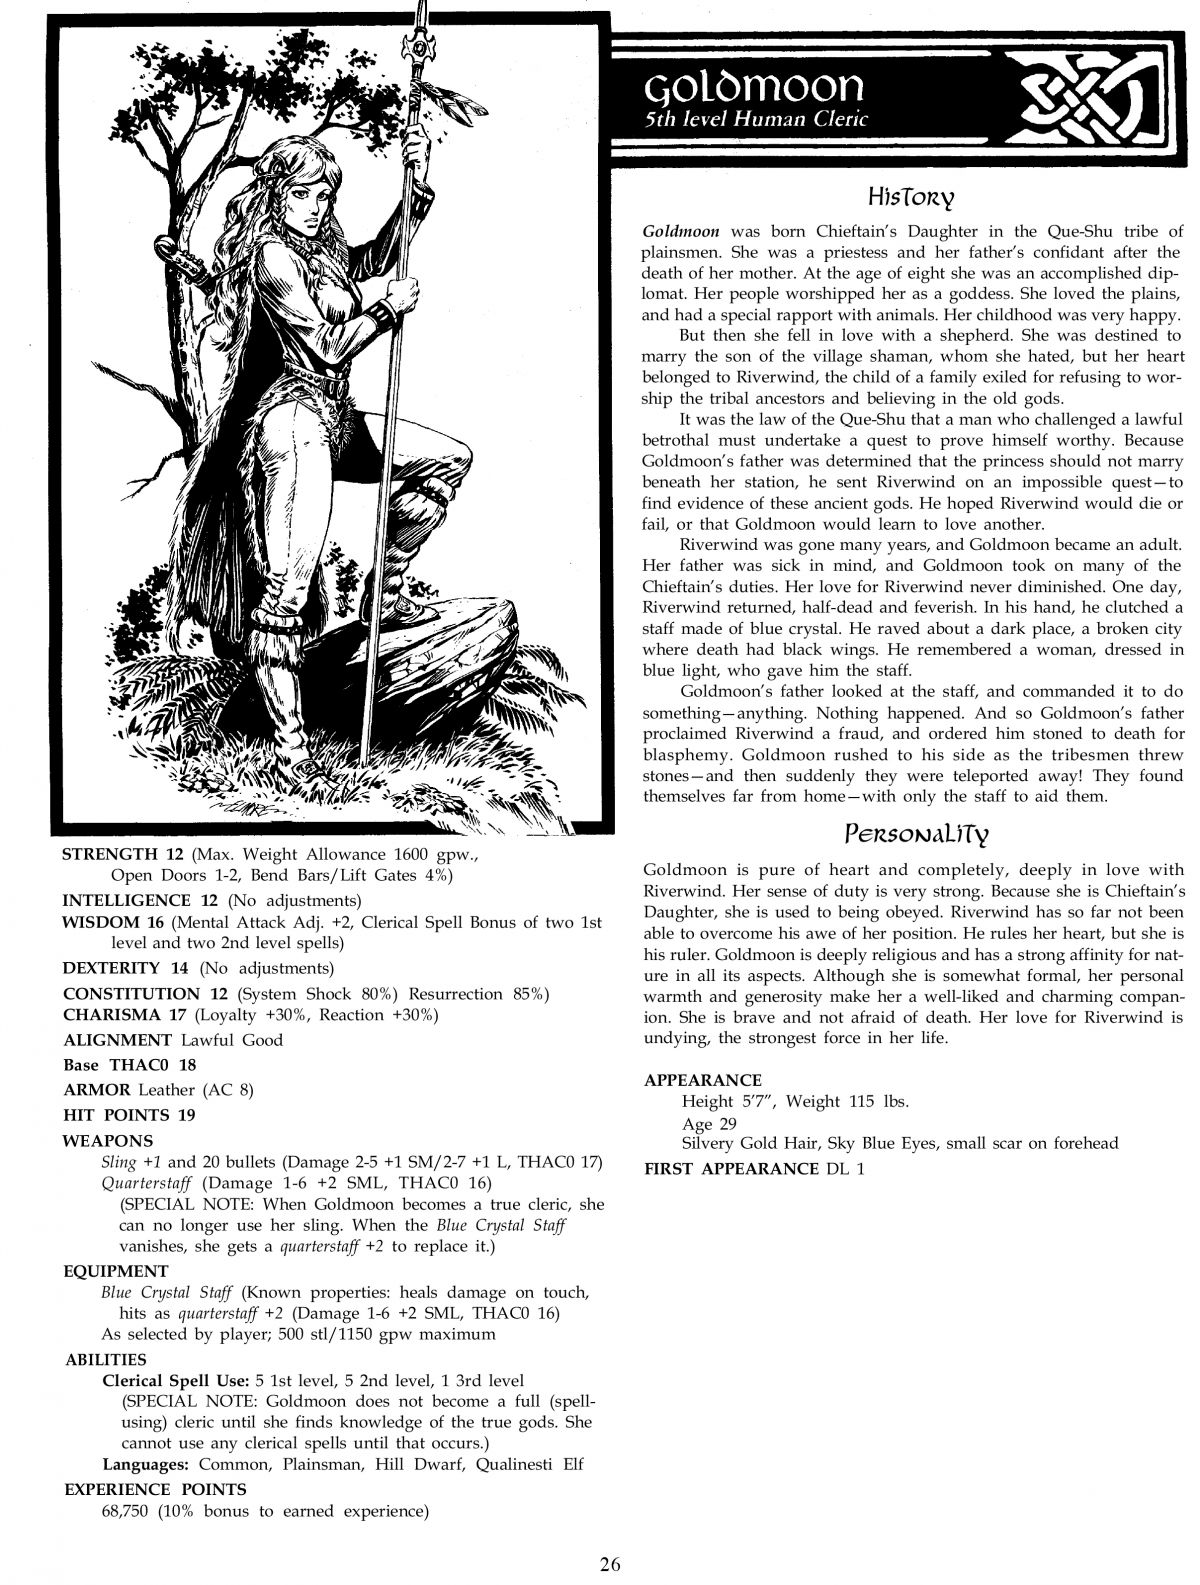 Art Day: Larry Elmore Dragonlance (1984) AD&D Module and